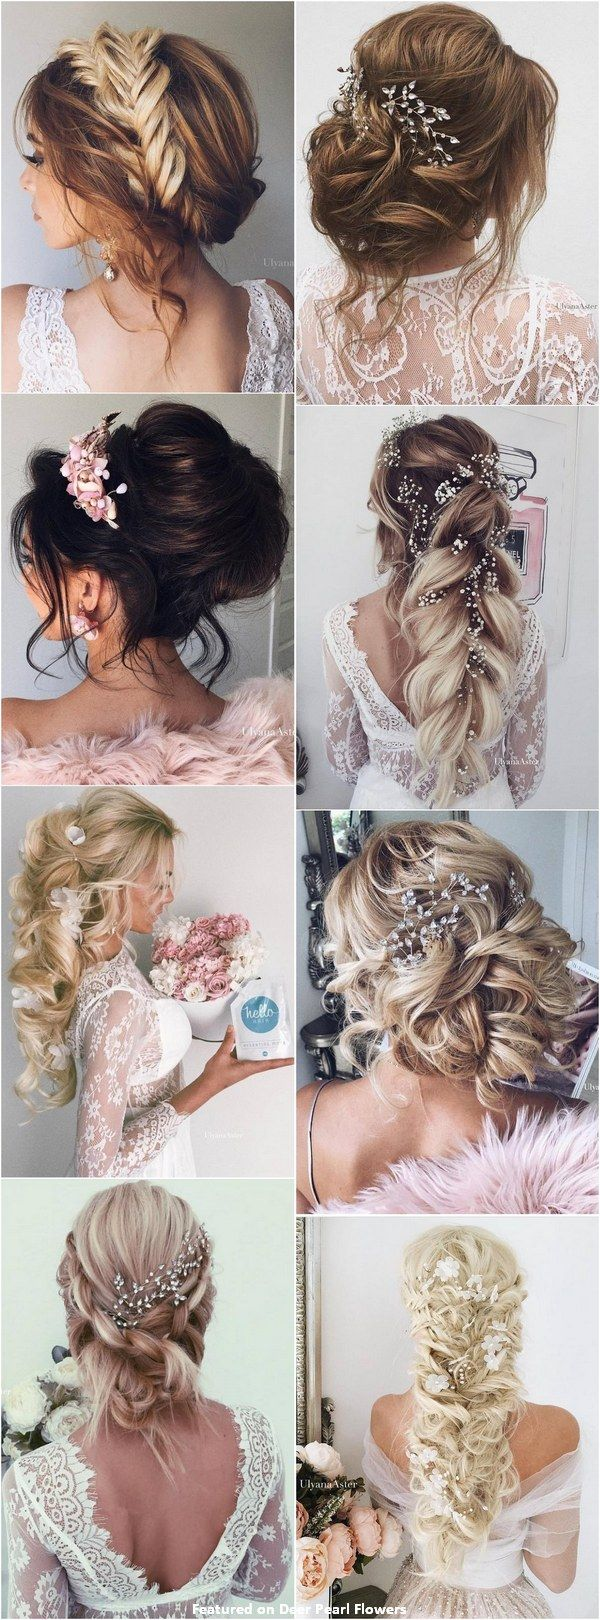 965 best wedding hair images on pinterest | hairstyle ideas, hair